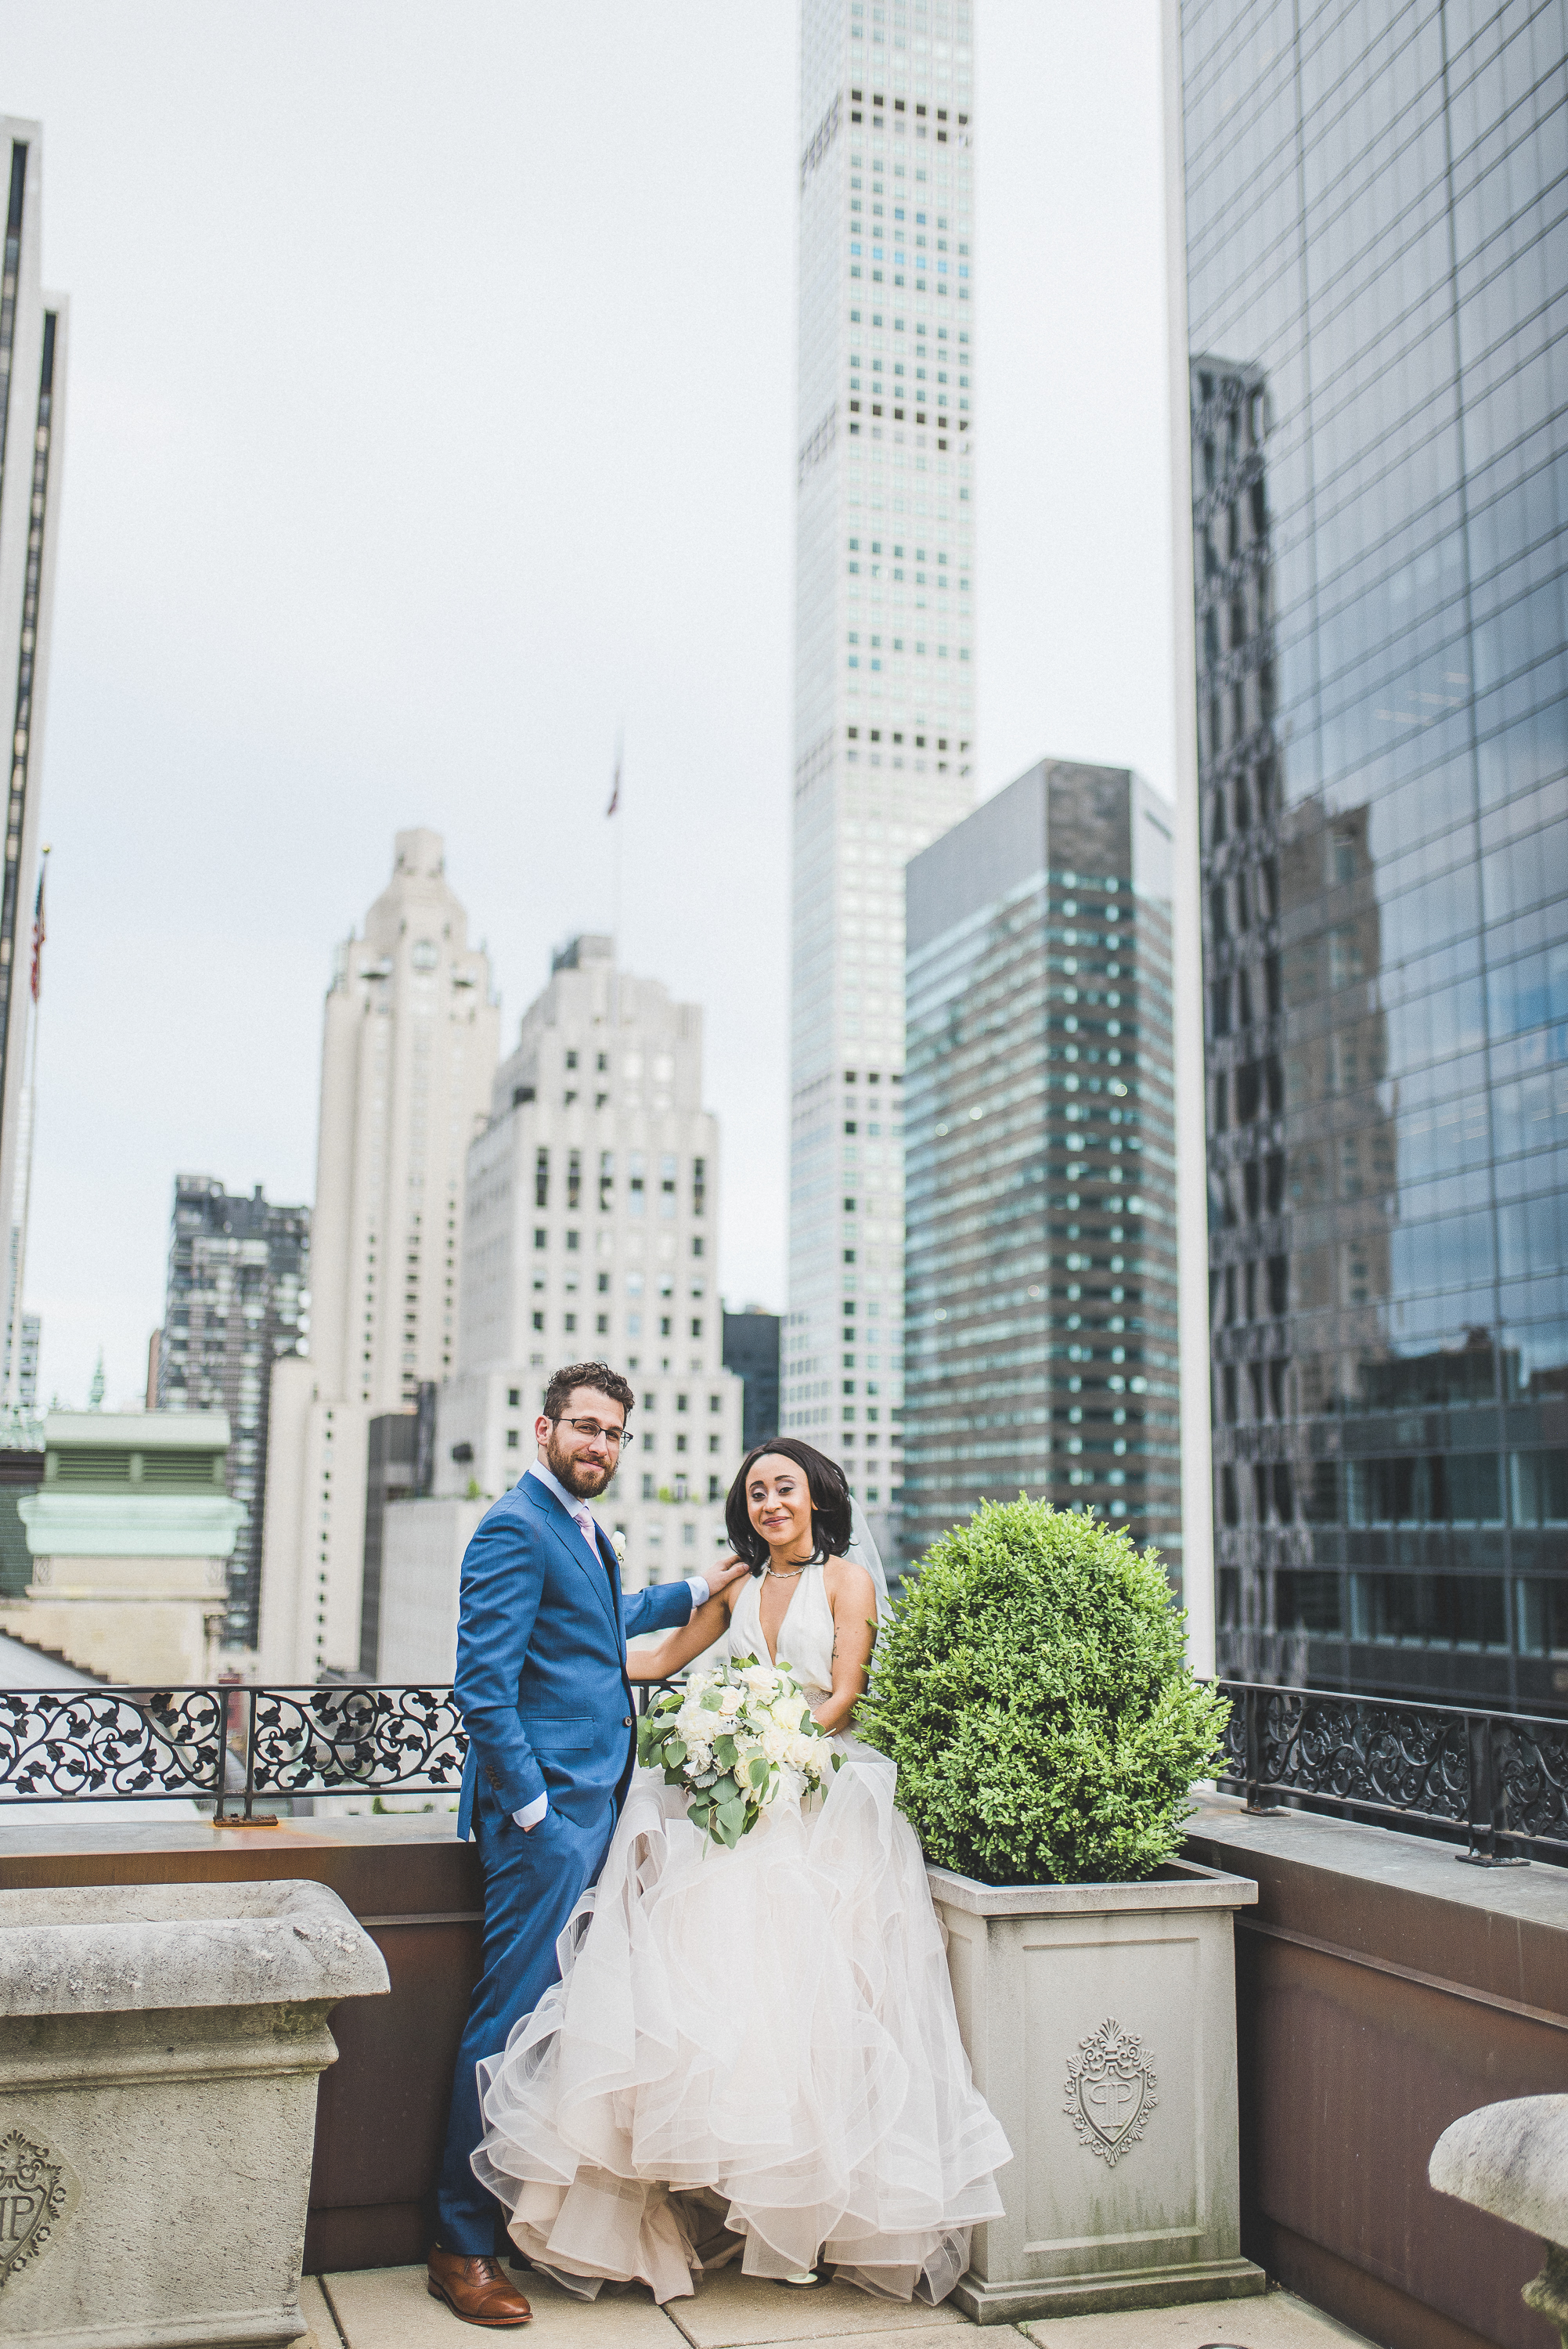 Bride and groom Plaza Hotel Suite rooftop NYC wedding inspiration midtown